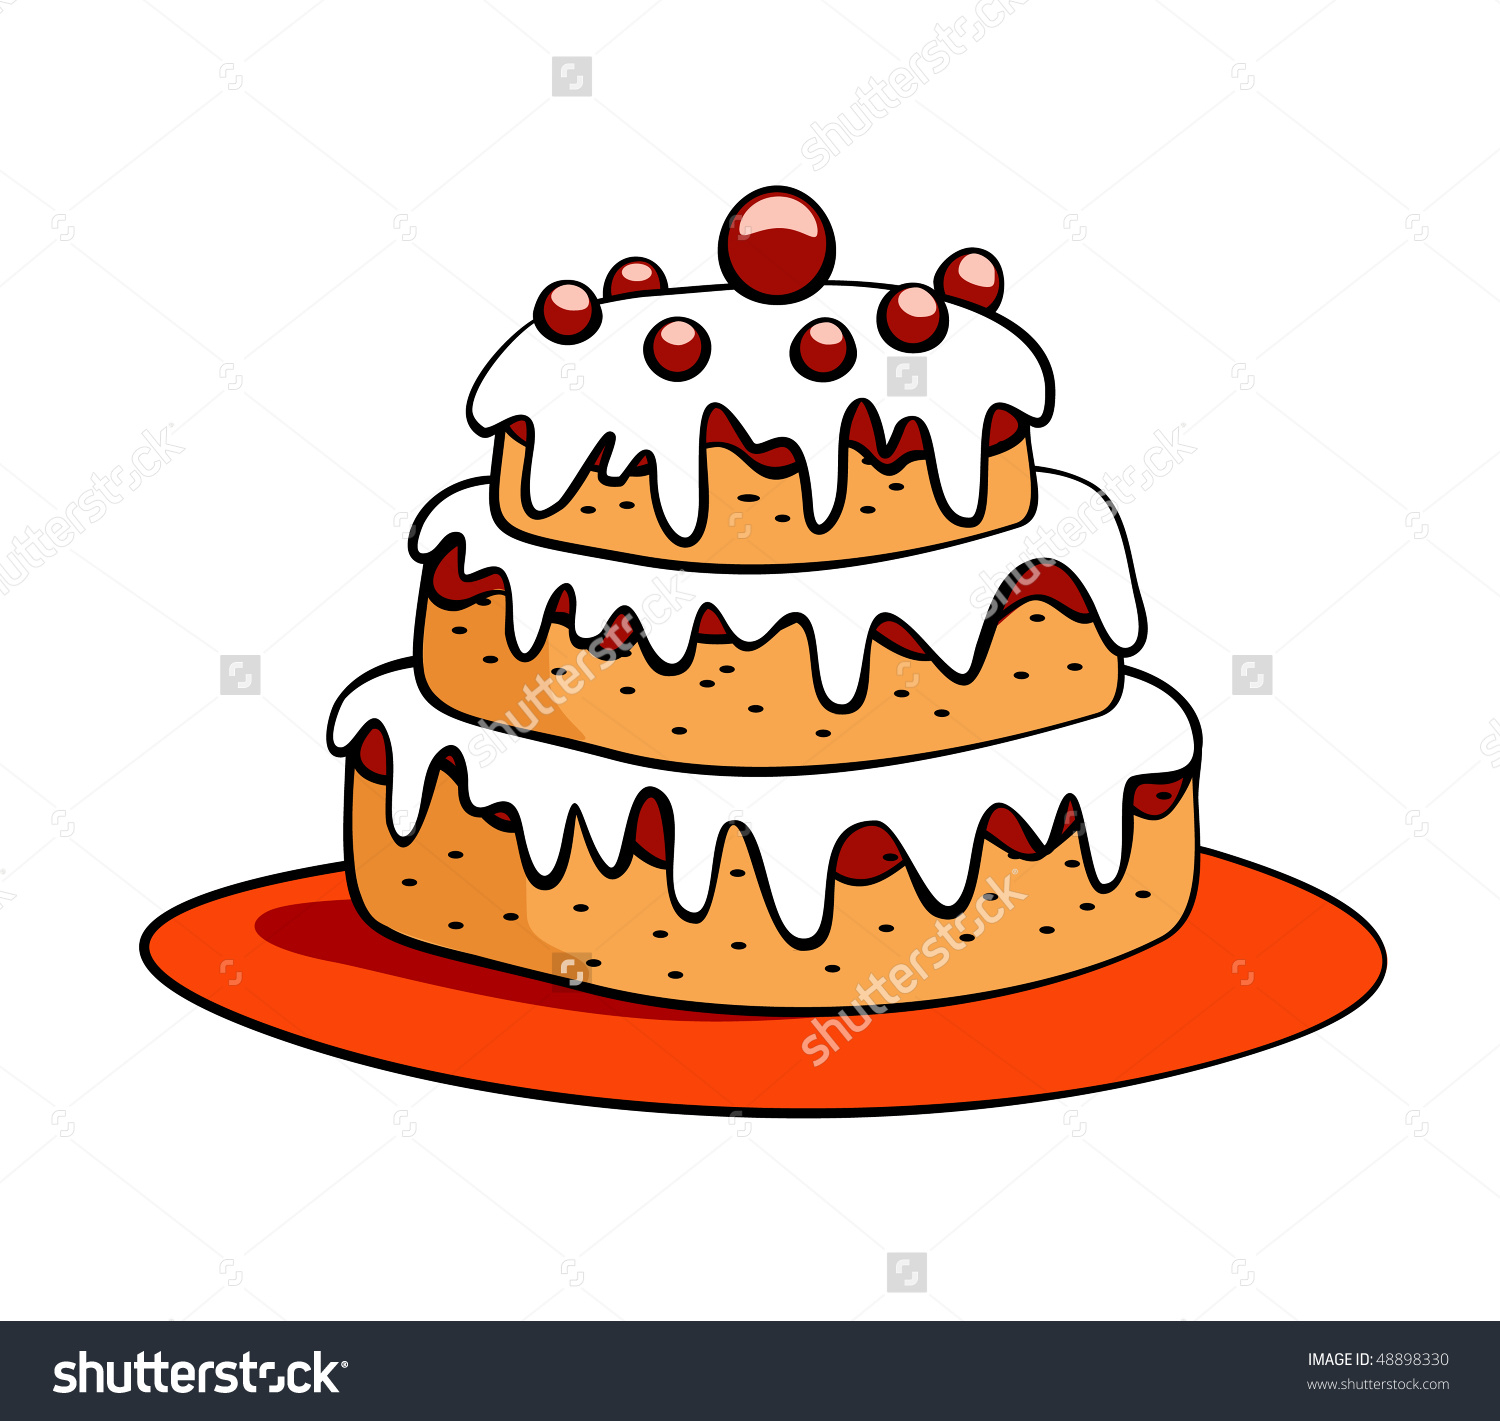 1500x1421 Cartoon Cake Drawing Cartoon Cake Drawing On Plate Stock Vector